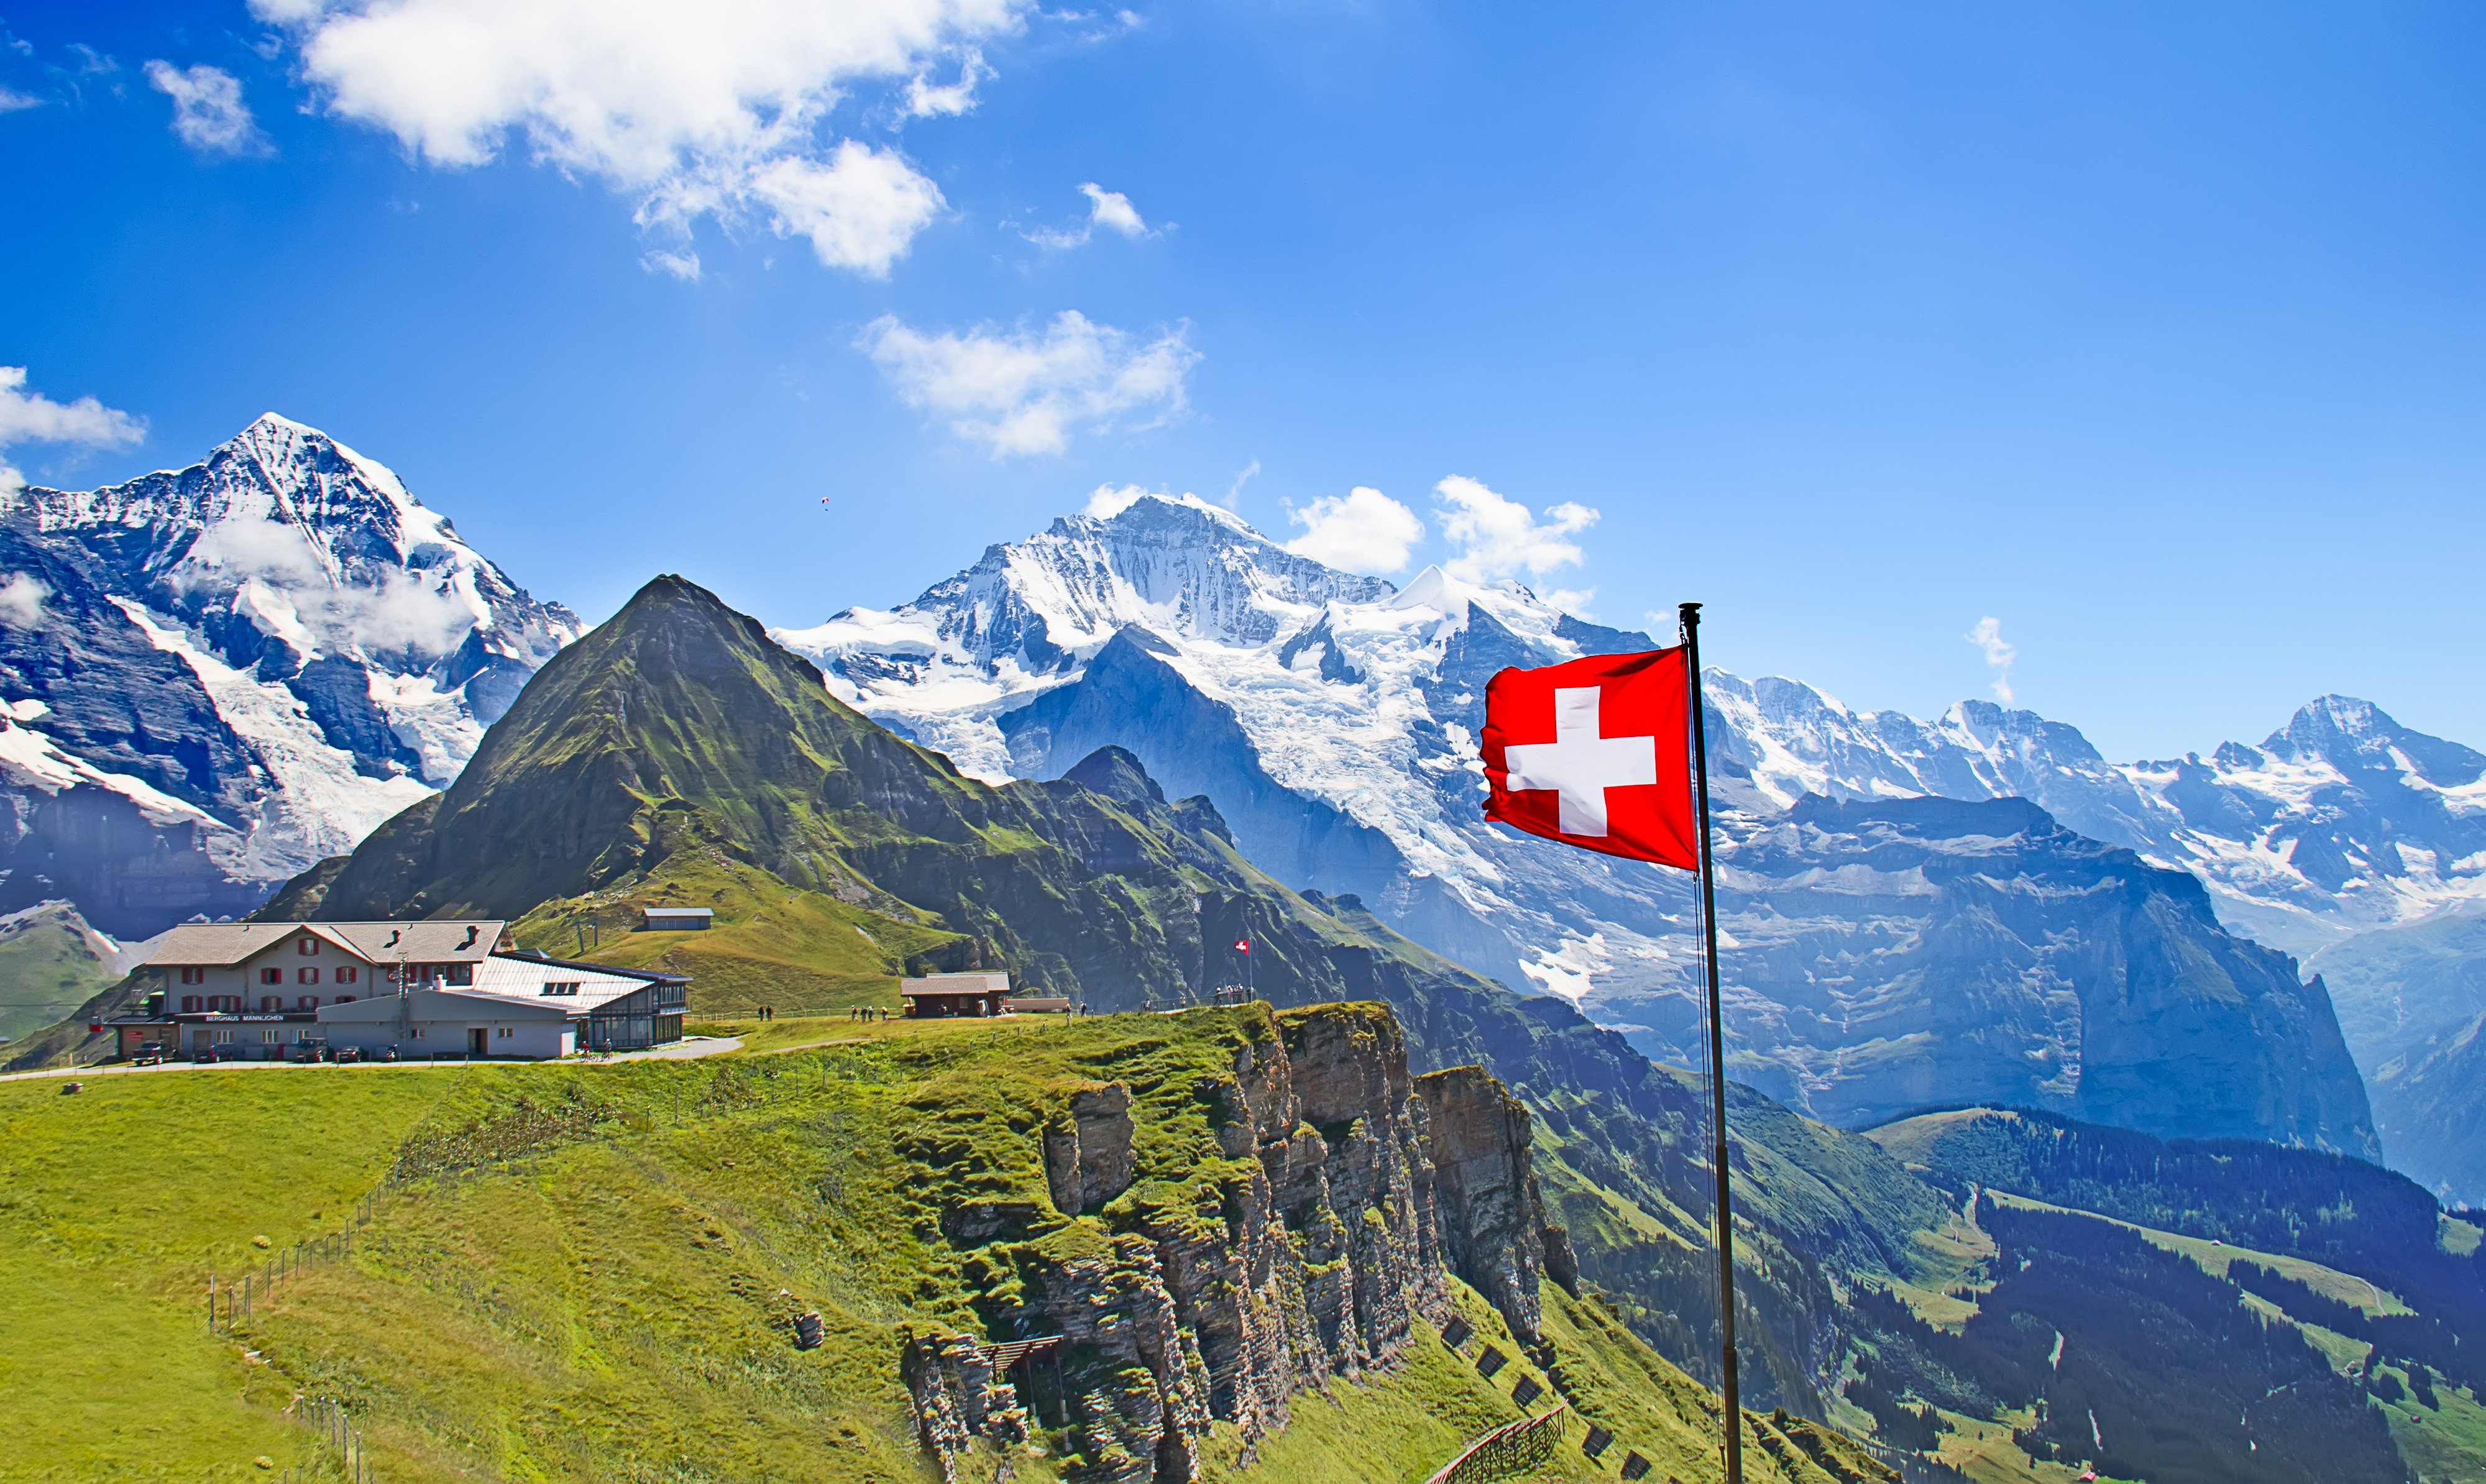 Day Trips from Zurich to Jungfraujoch